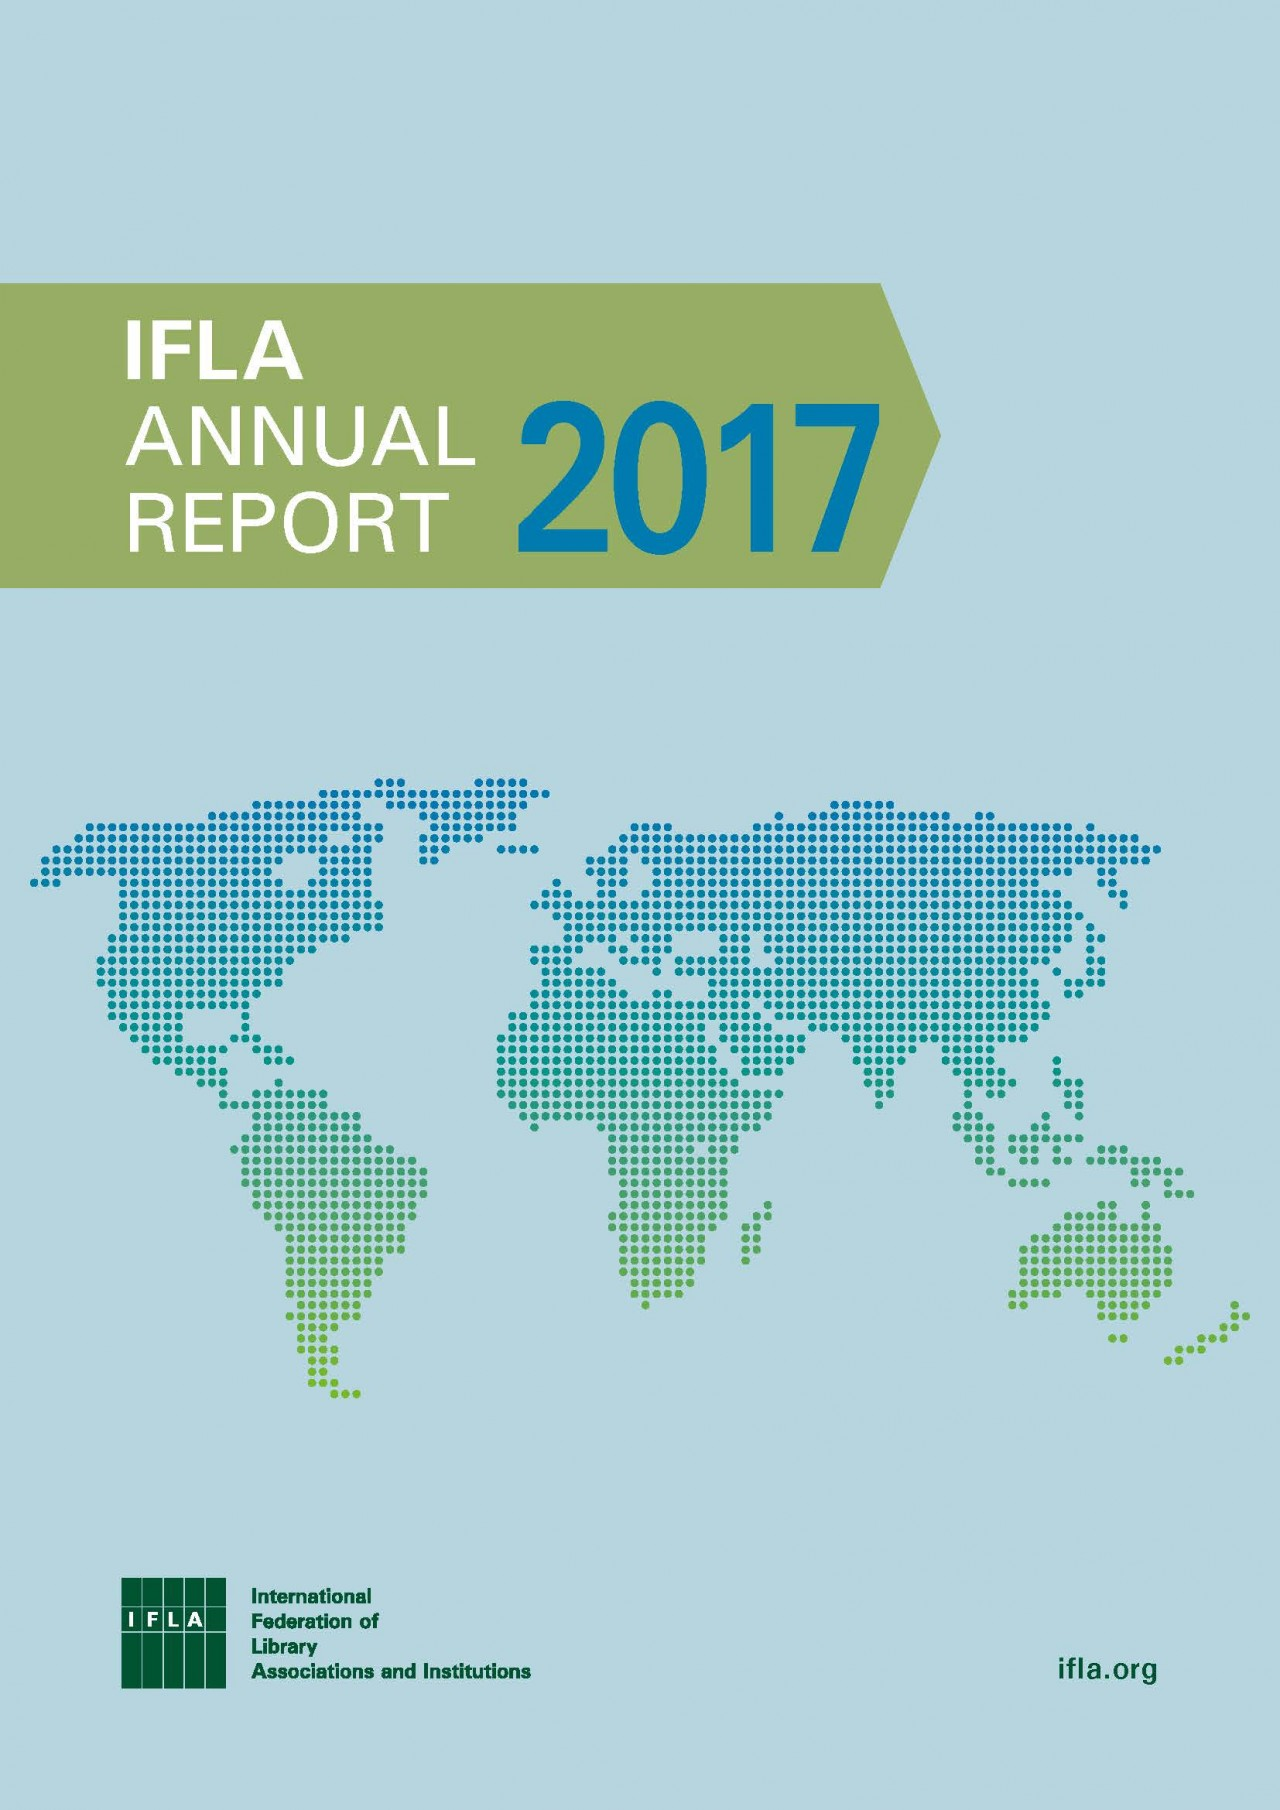 IFLA Now available: IFLA Annual Report 2017